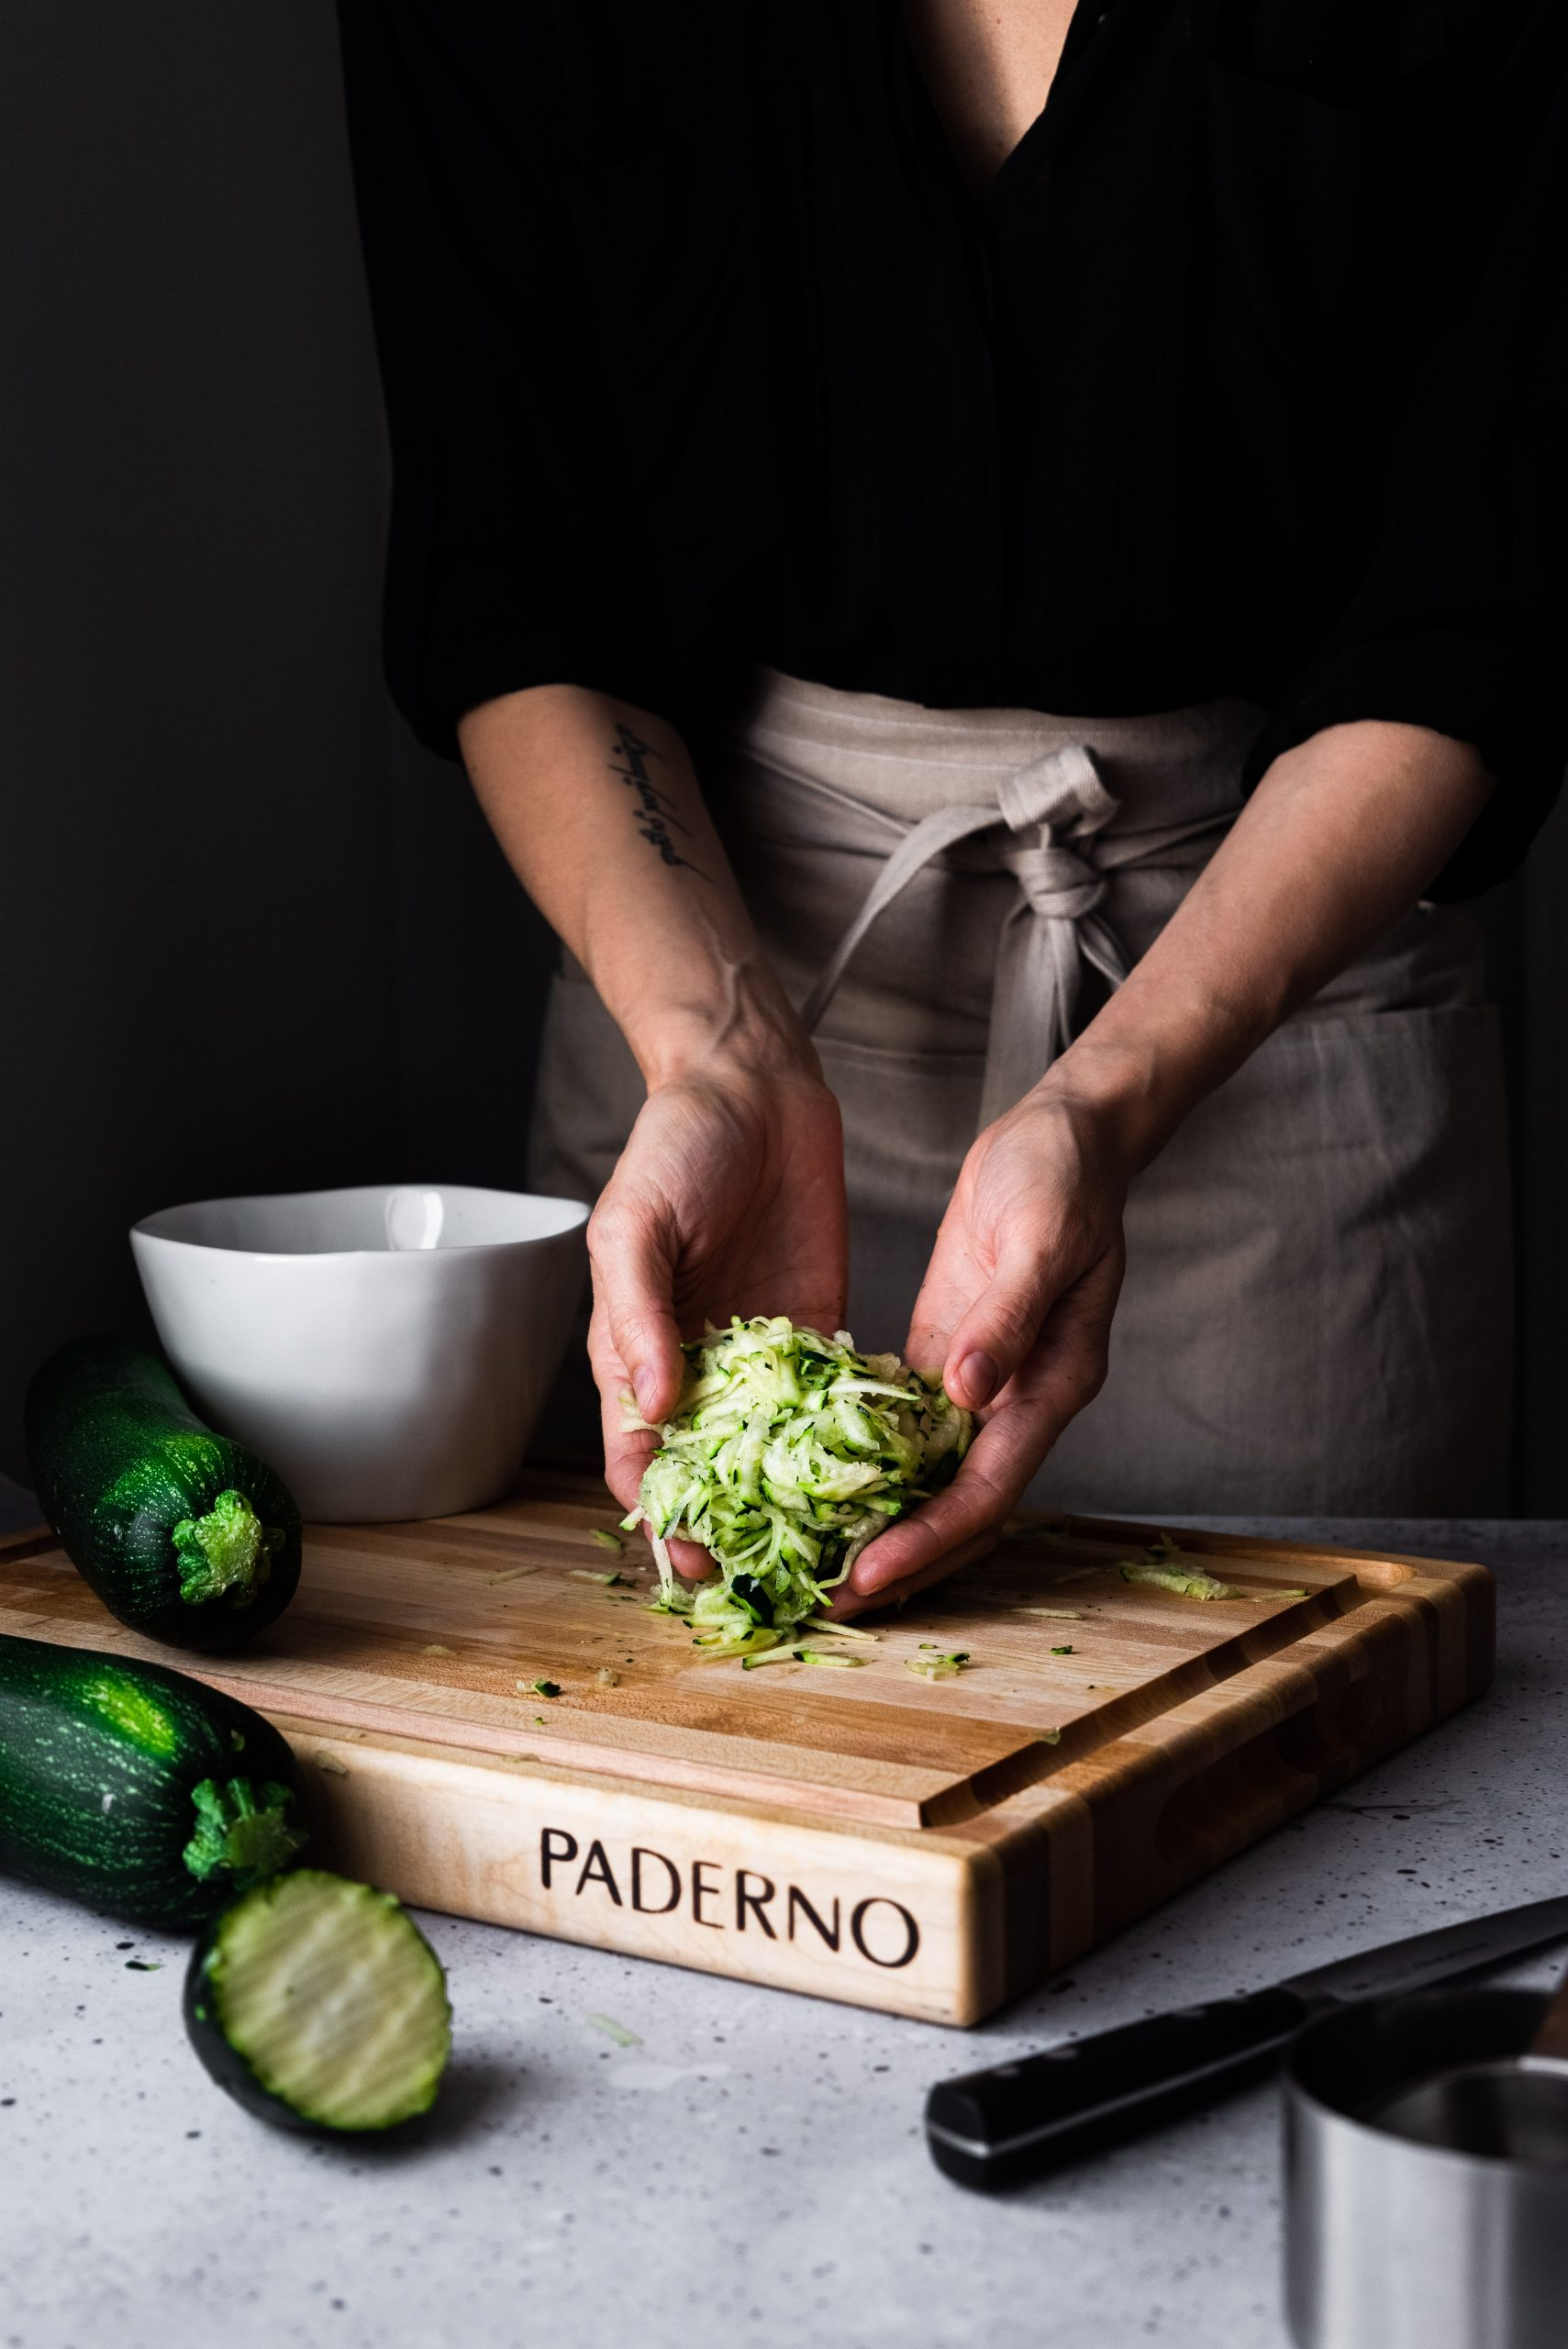 A portrait of a person in a beige apron holding shredded zucchini on a cutting board with a white bowl in the background.